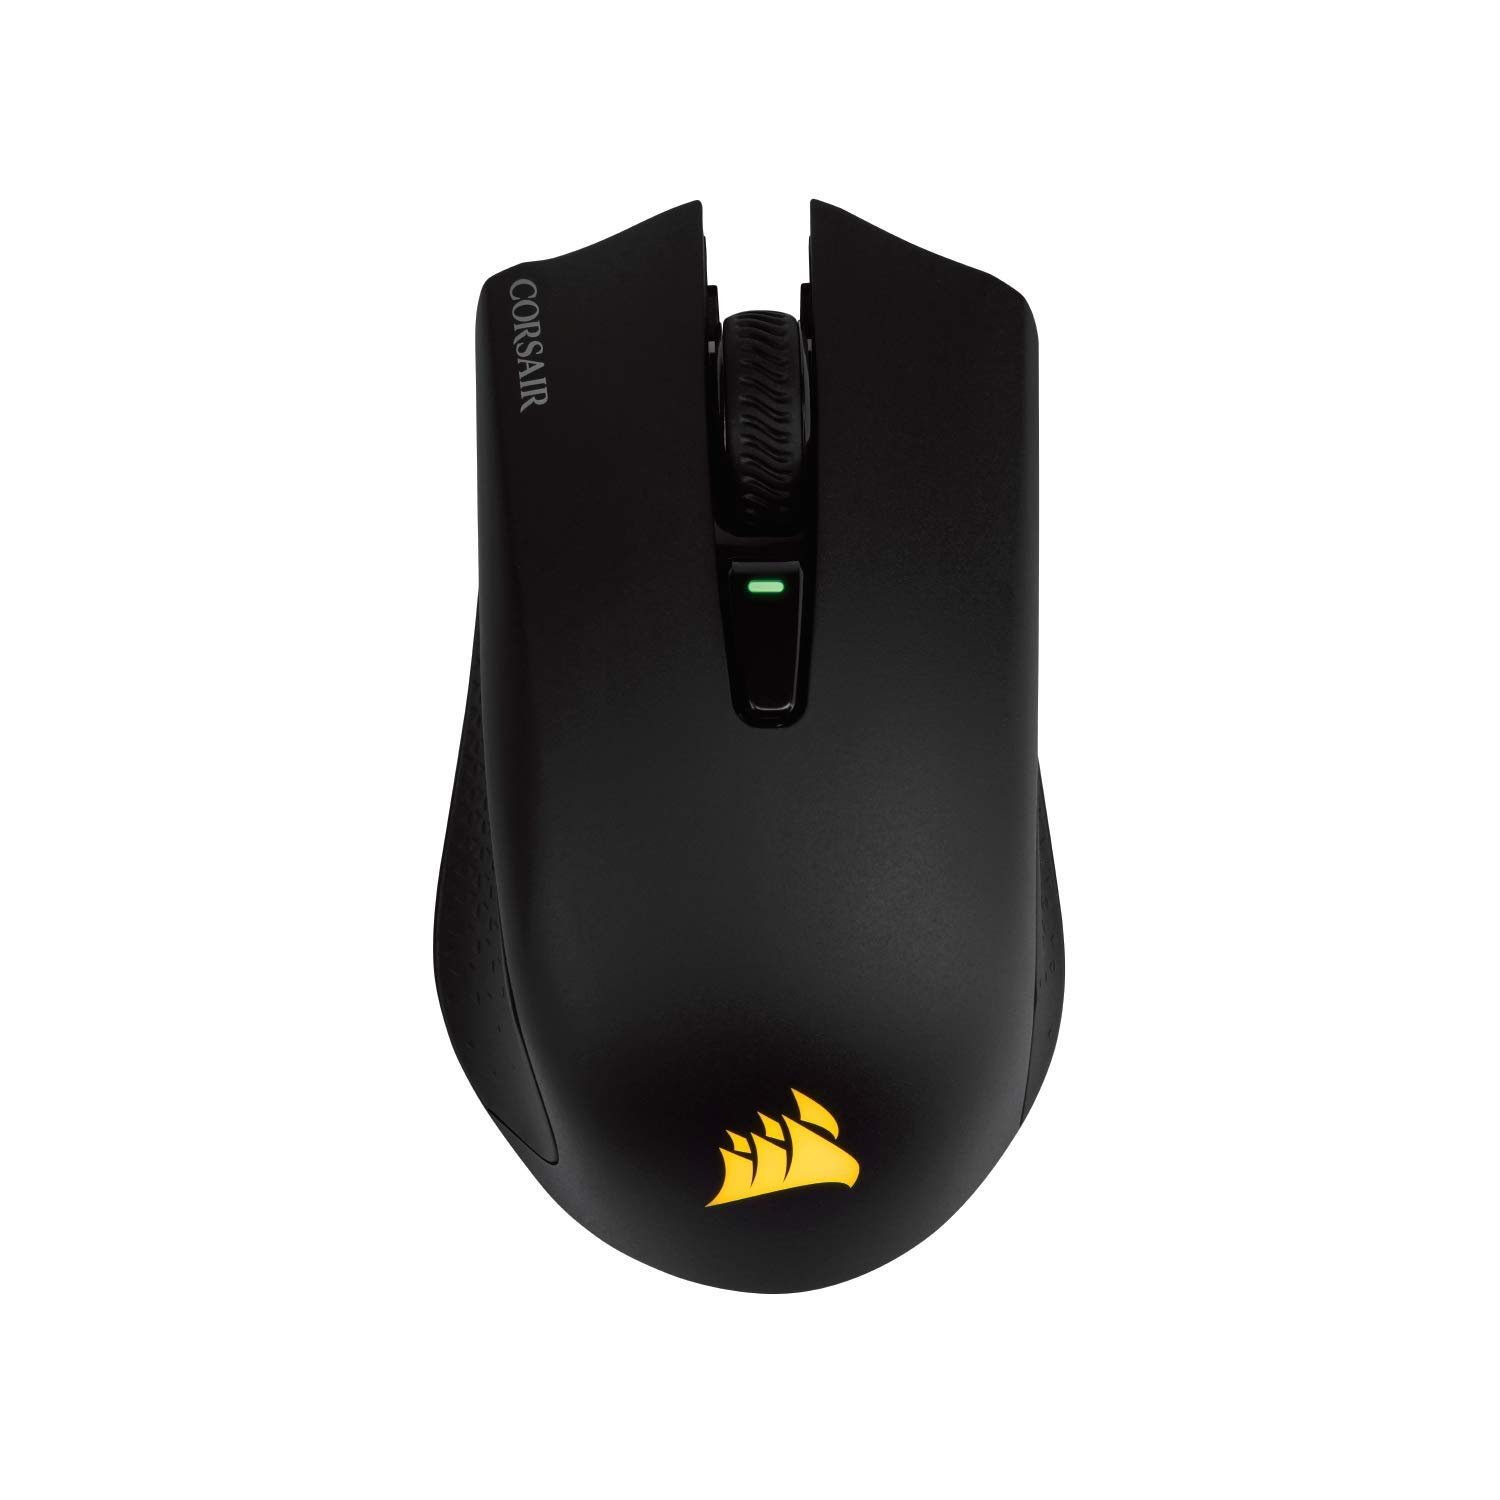 Corsair Harpoon RGB Wireless – Wireless Rechargeable Gaming Mouse – 10,000 DPI Optical Sensor